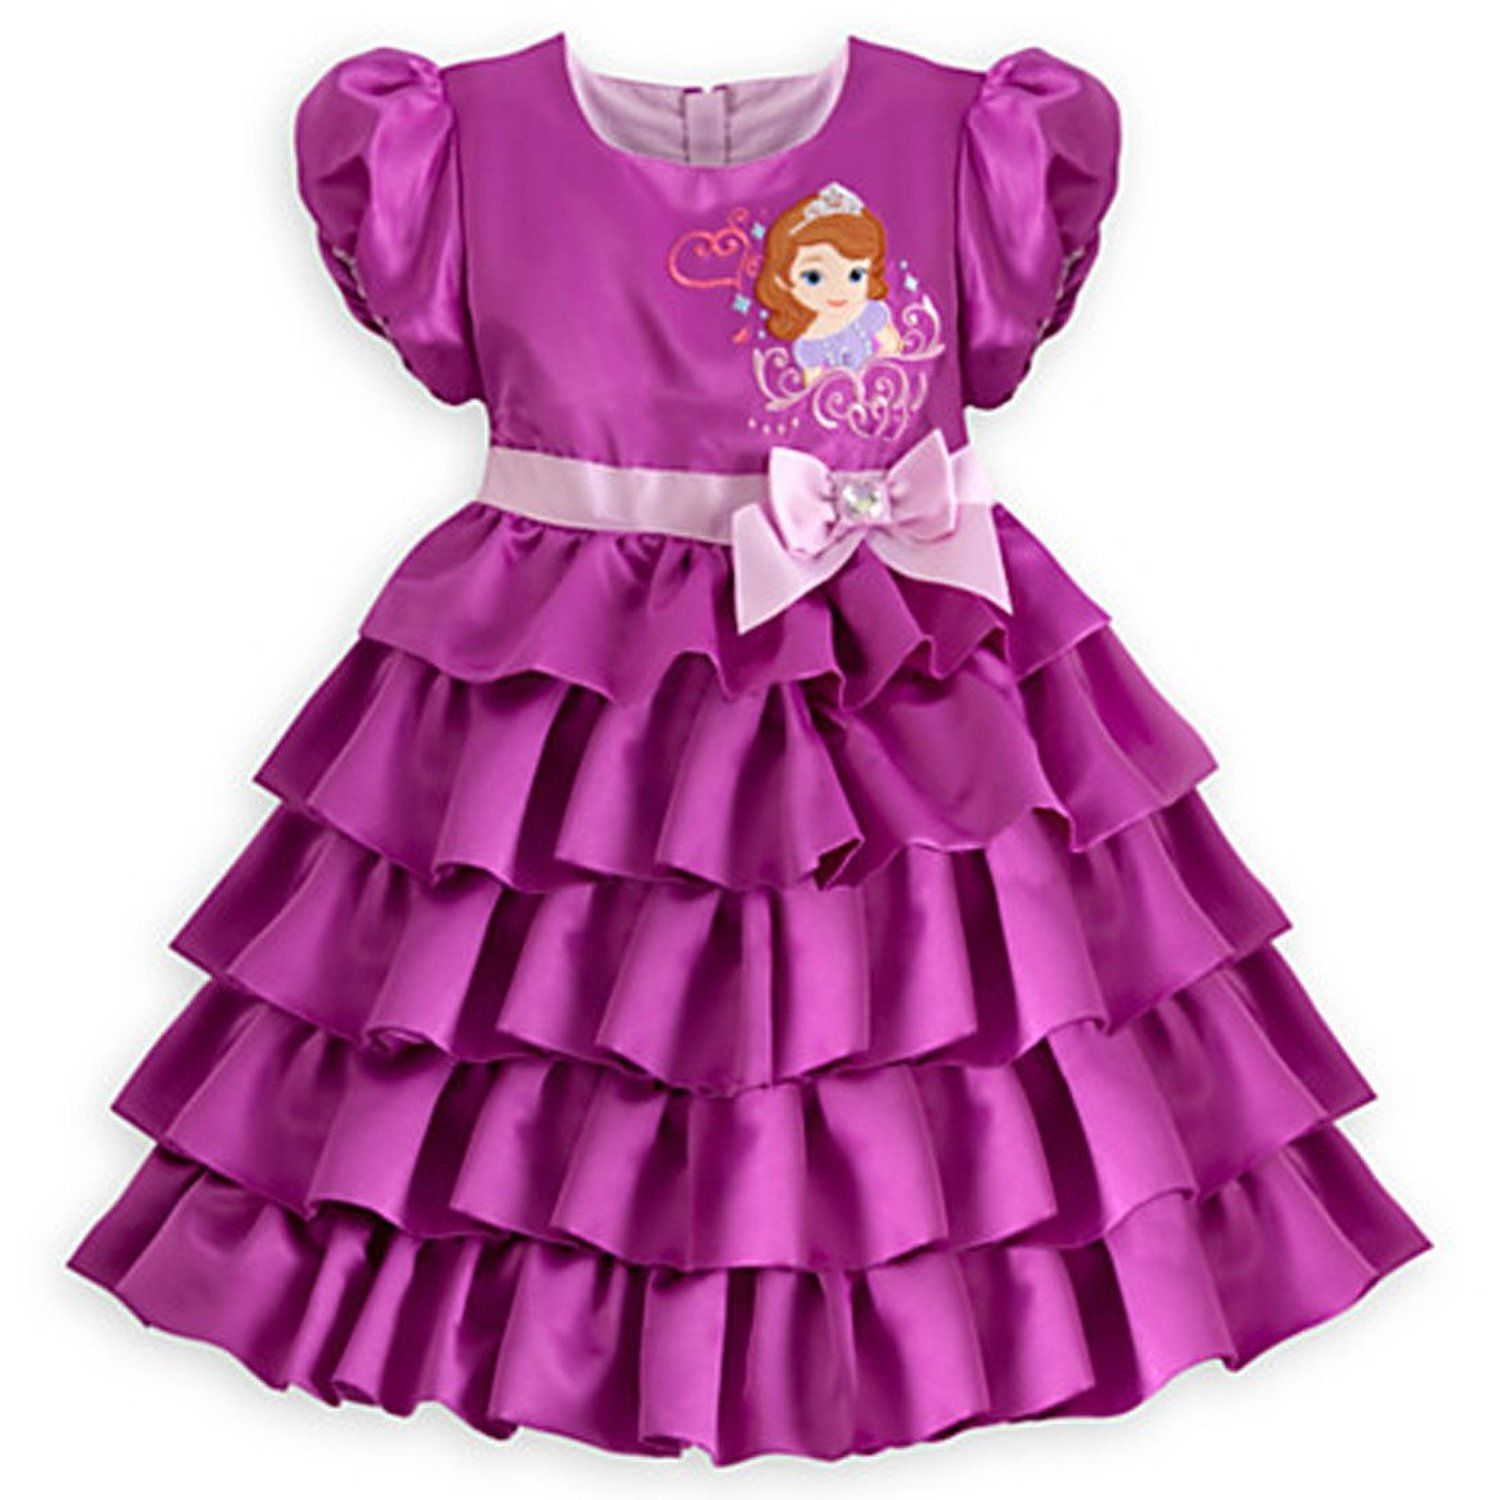 lowestbest Baby Infant Toddler Girls Purple